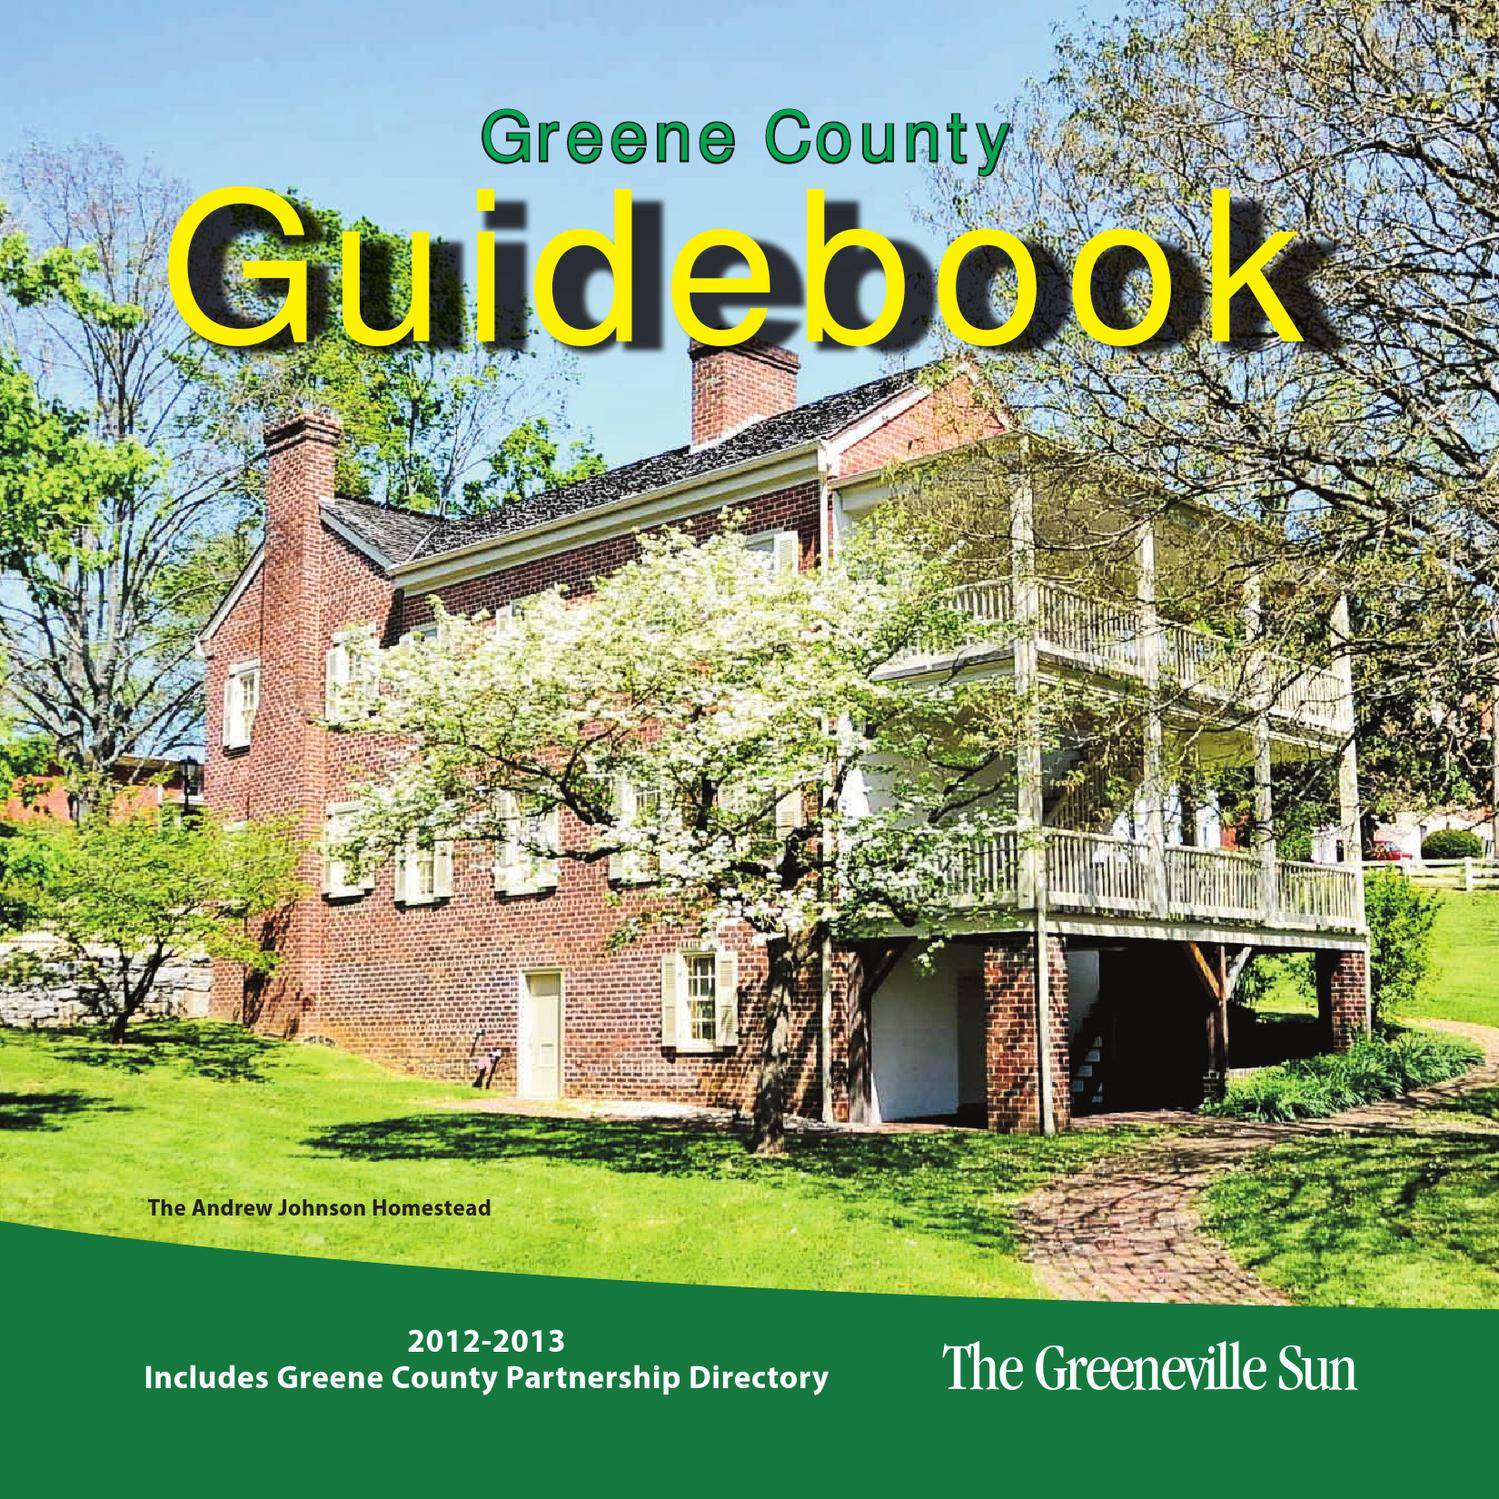 Greene county guidebook 2012 part 1 by the greeneville sun issuu fandeluxe Choice Image